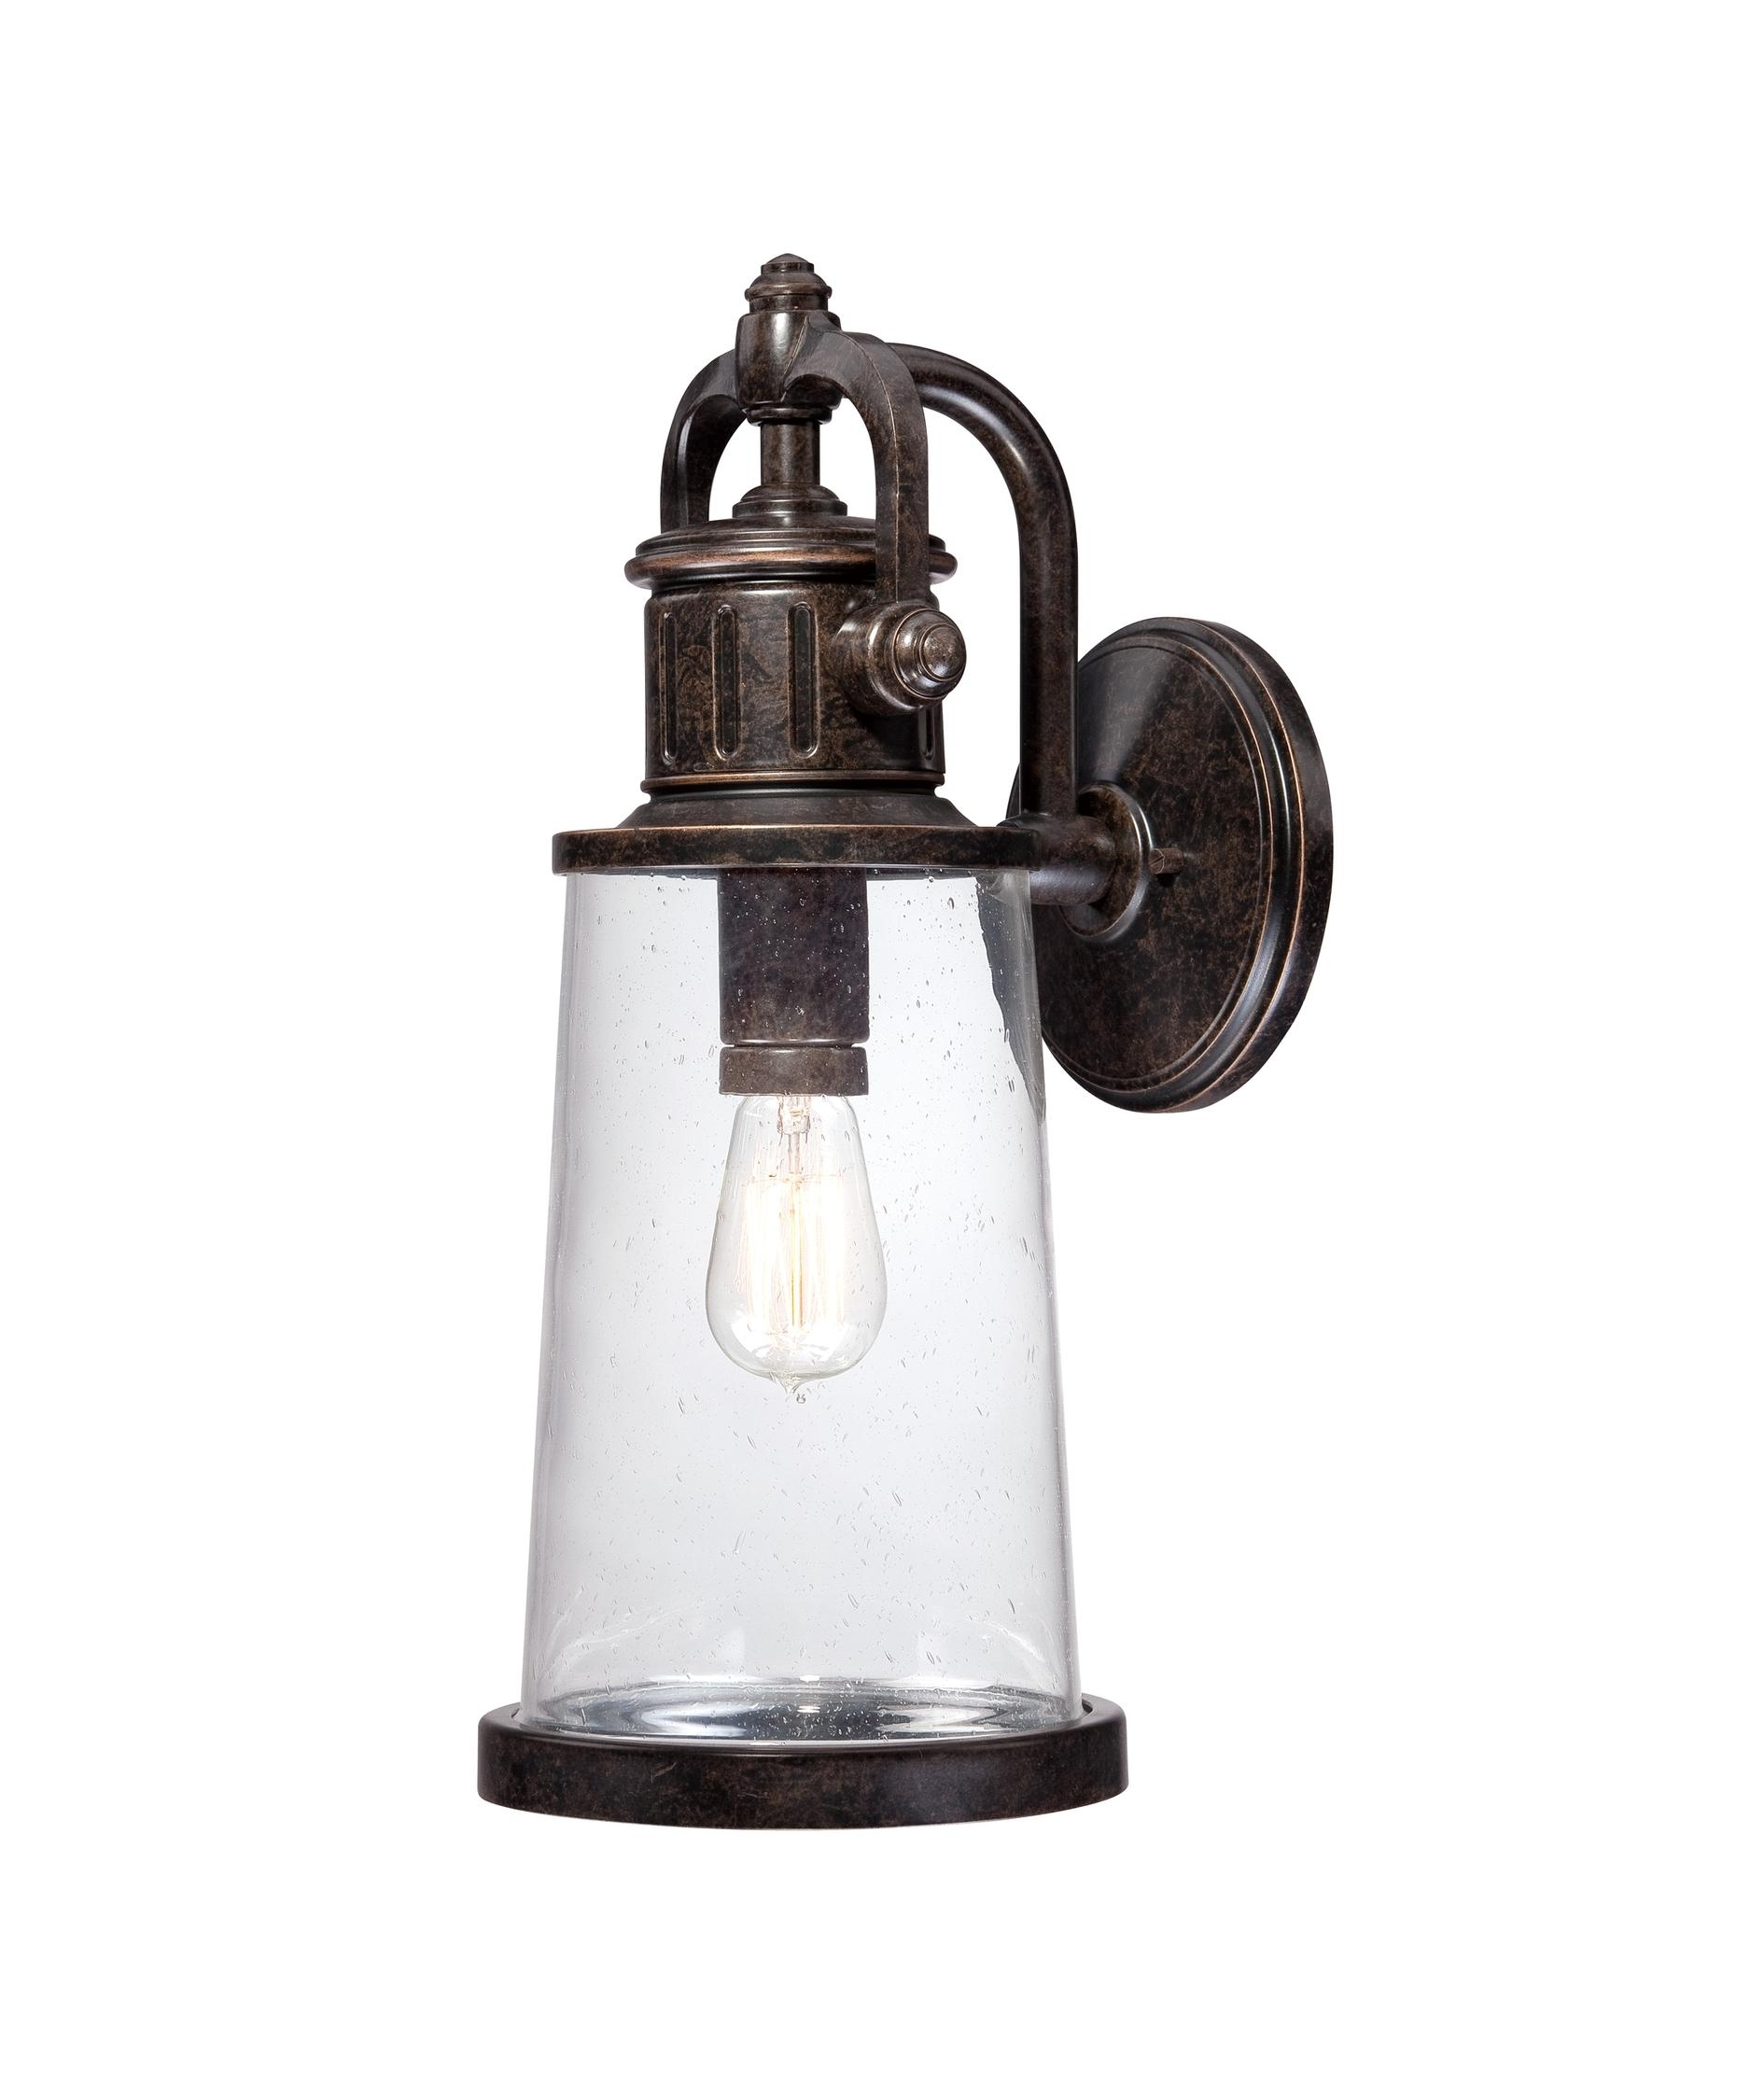 Quoizel Sdn8408 Steadman 8 Inch Wide 1 Light Outdoor Wall Light throughout Quoizel Outdoor Lanterns (Image 15 of 20)